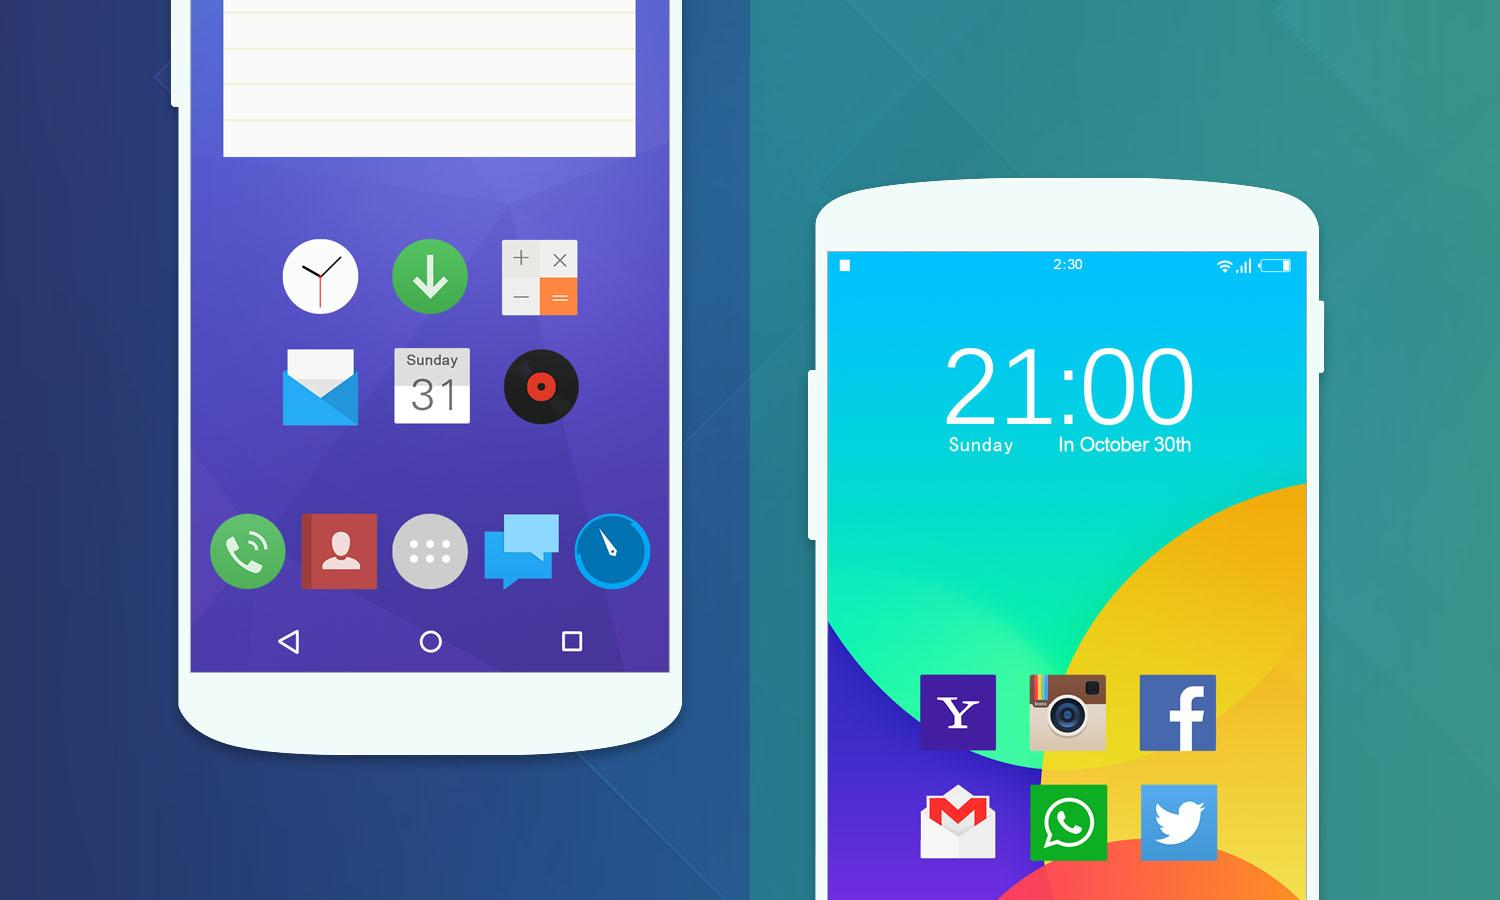 KK Launcher FlyMe Theme 1 2 APK Download - Android Personalization Apps